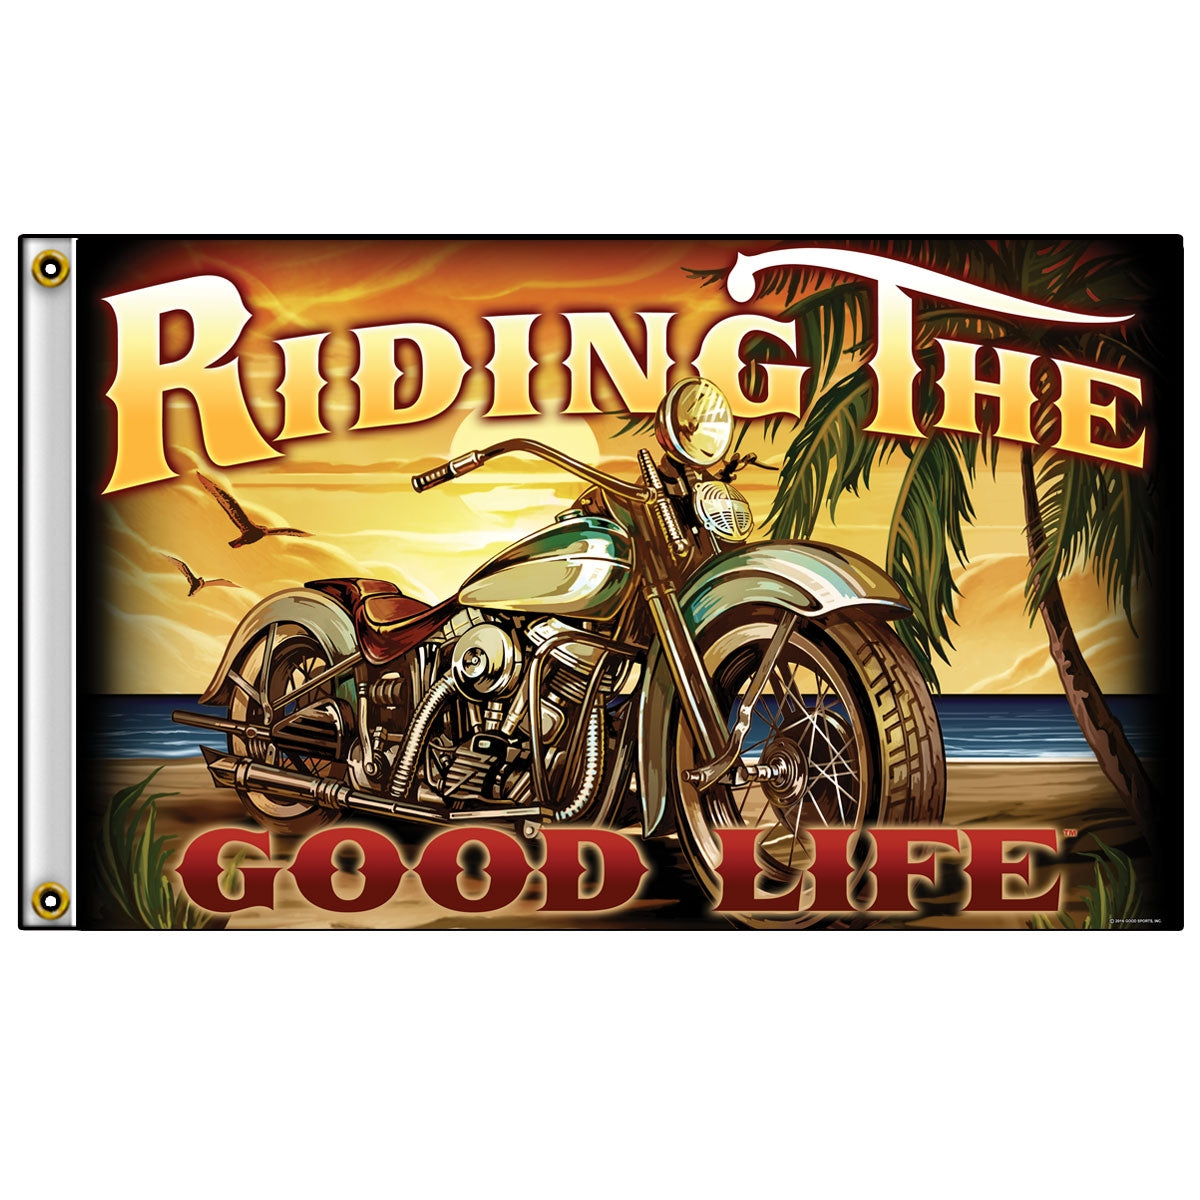 Hot Leathers Riding the Good Life Flag